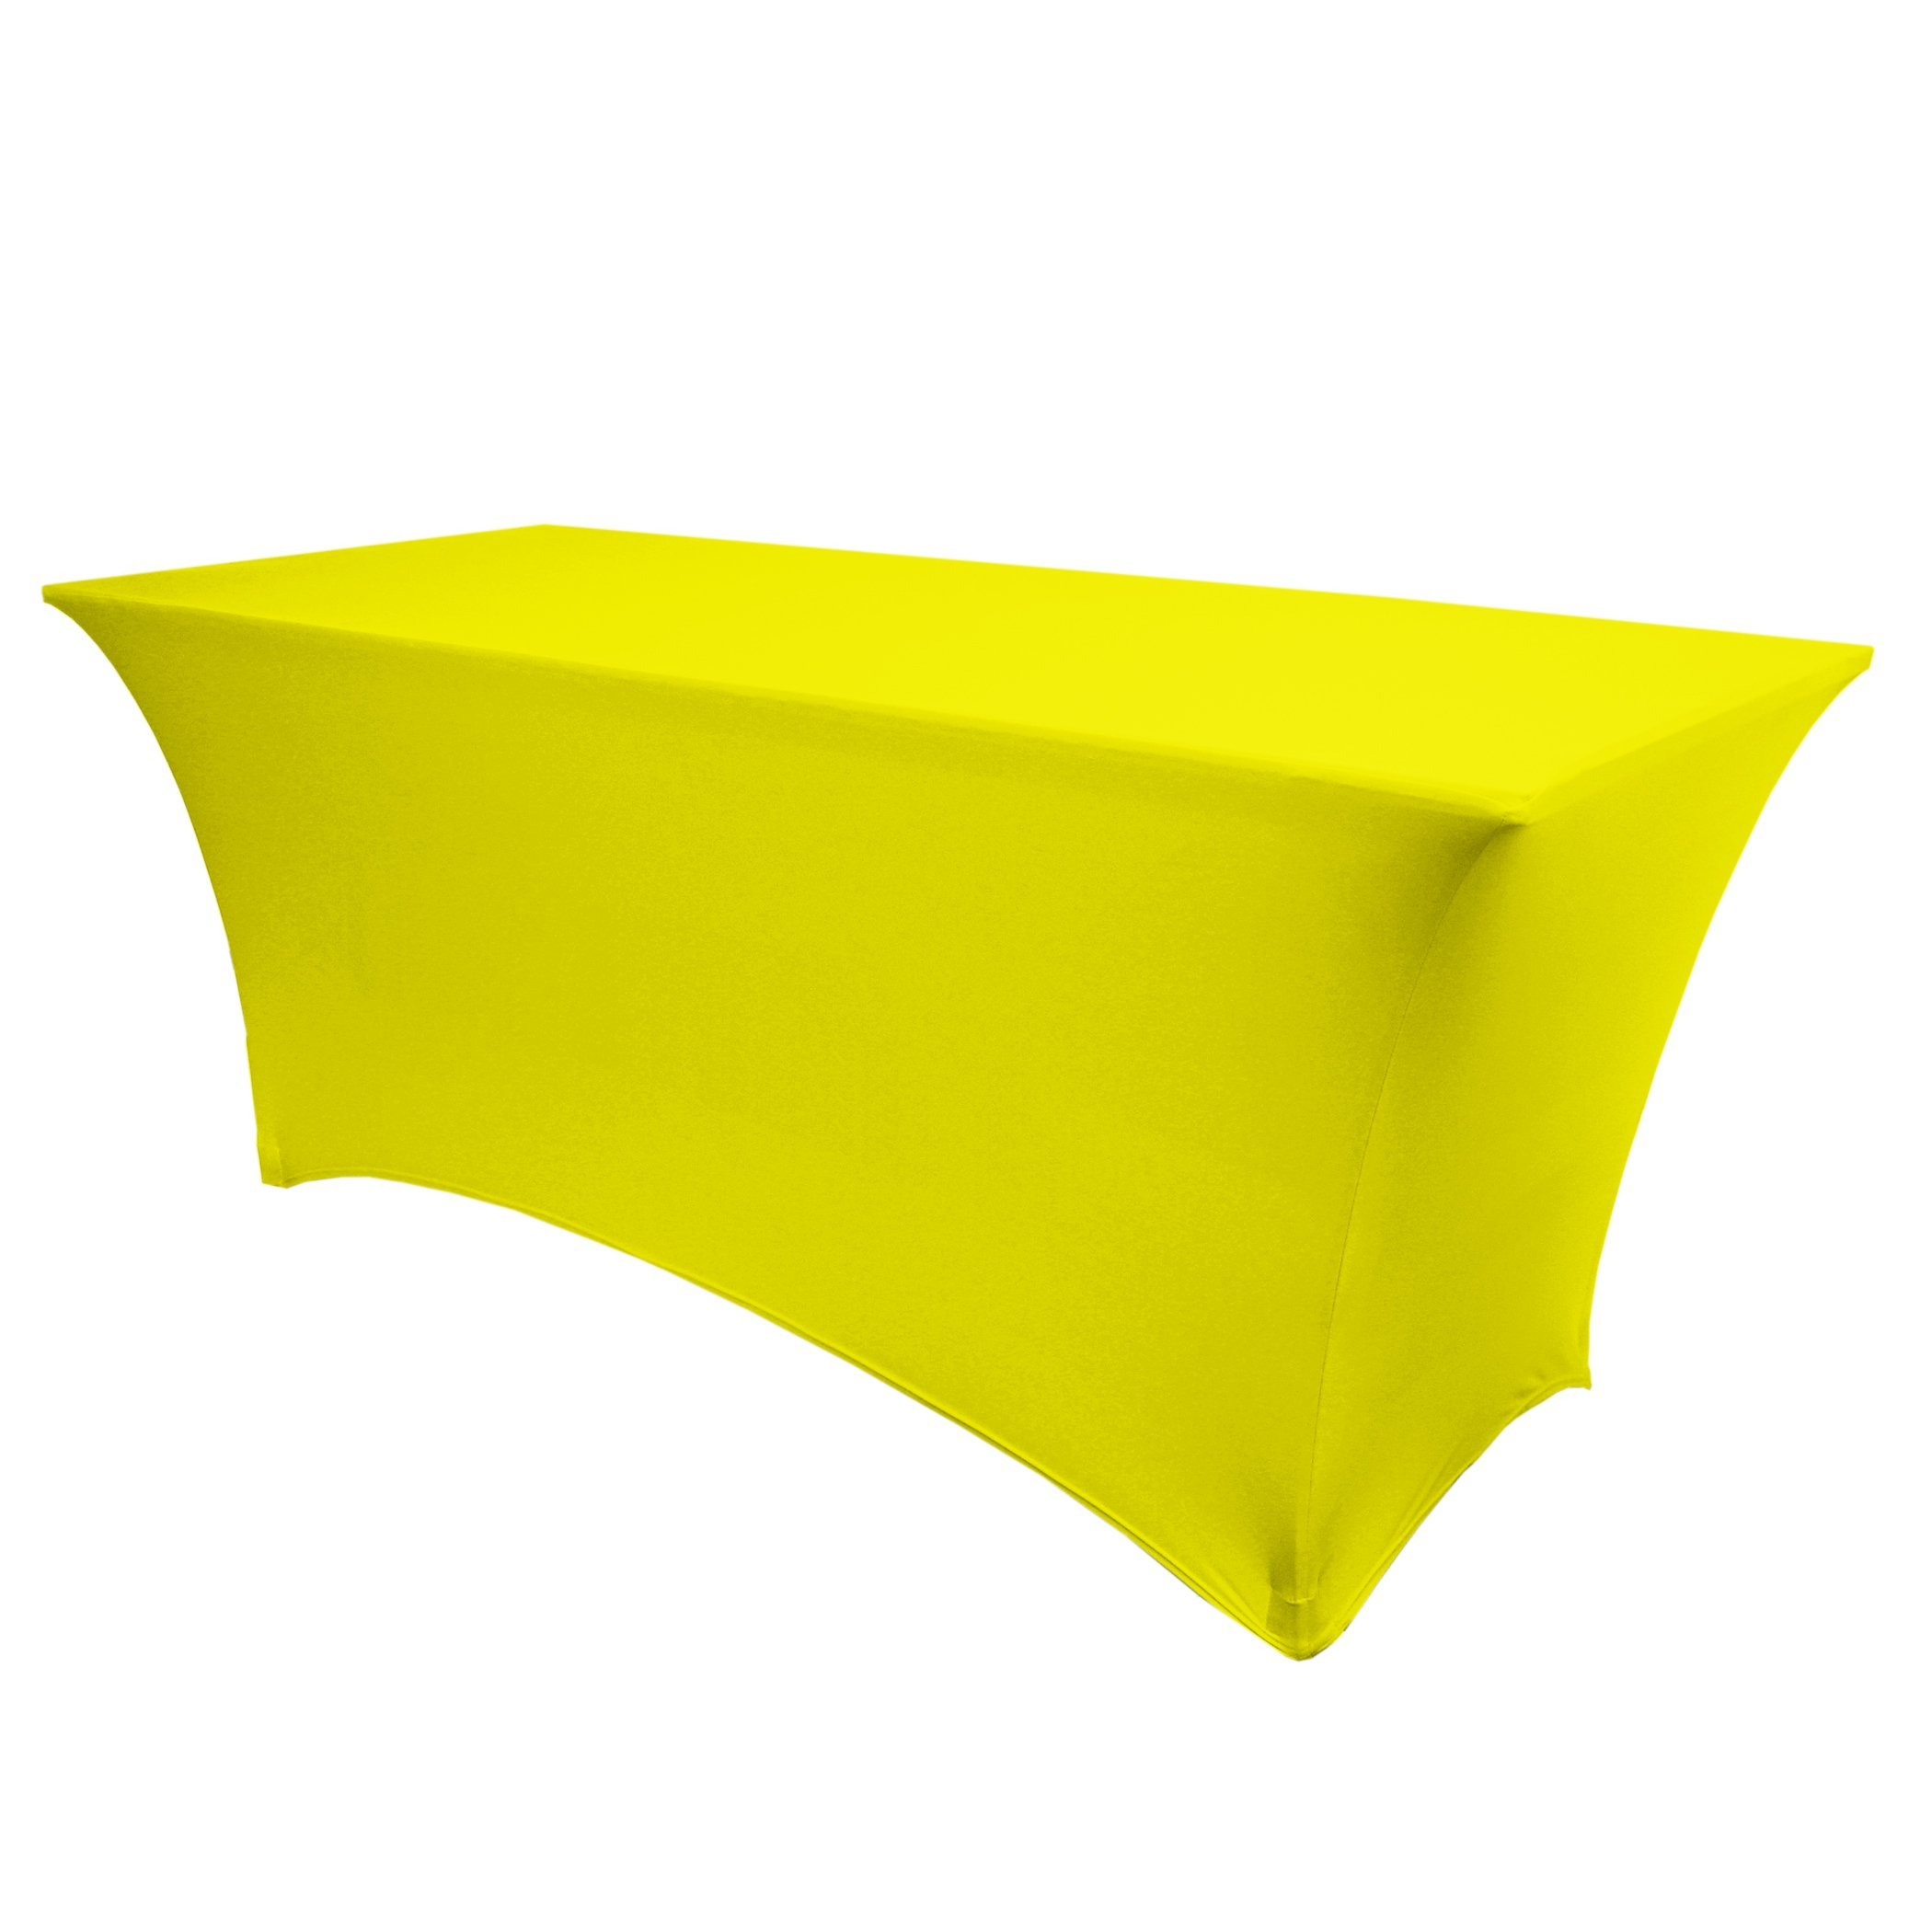 Ultimate Textile 6 ft. Fitted Spandex Table Cover - Fits 18 x 72-Inch Rectangular Tables, Neon Yellow